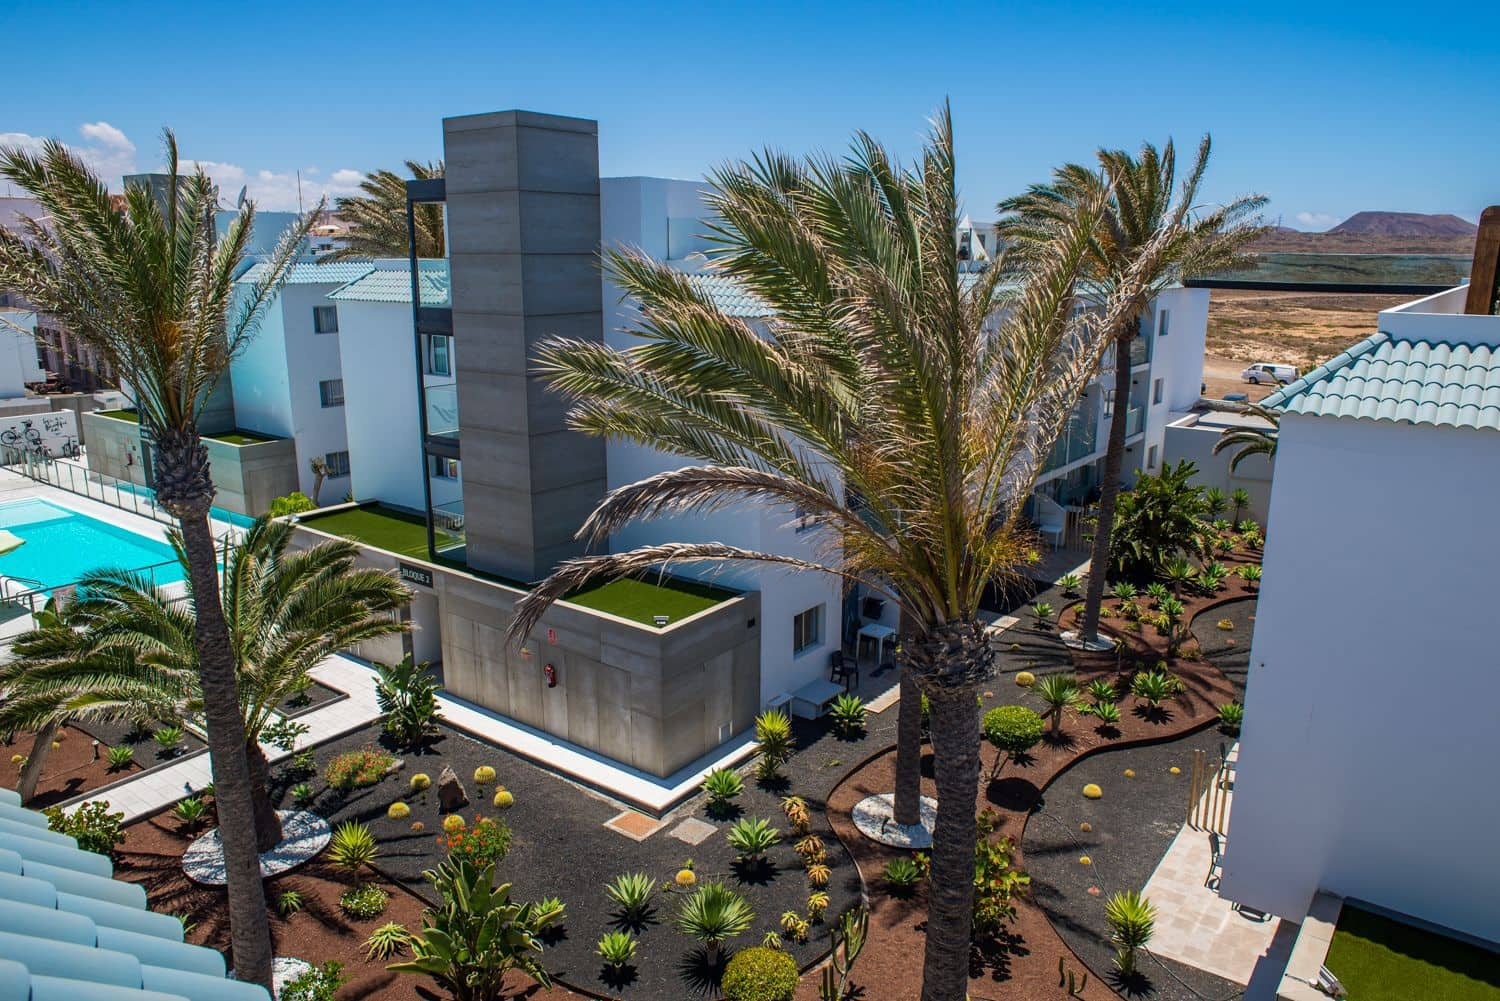 2 Bedroom Apartment For Rent In Corralejo With Pool 1 600 Ref 5917832